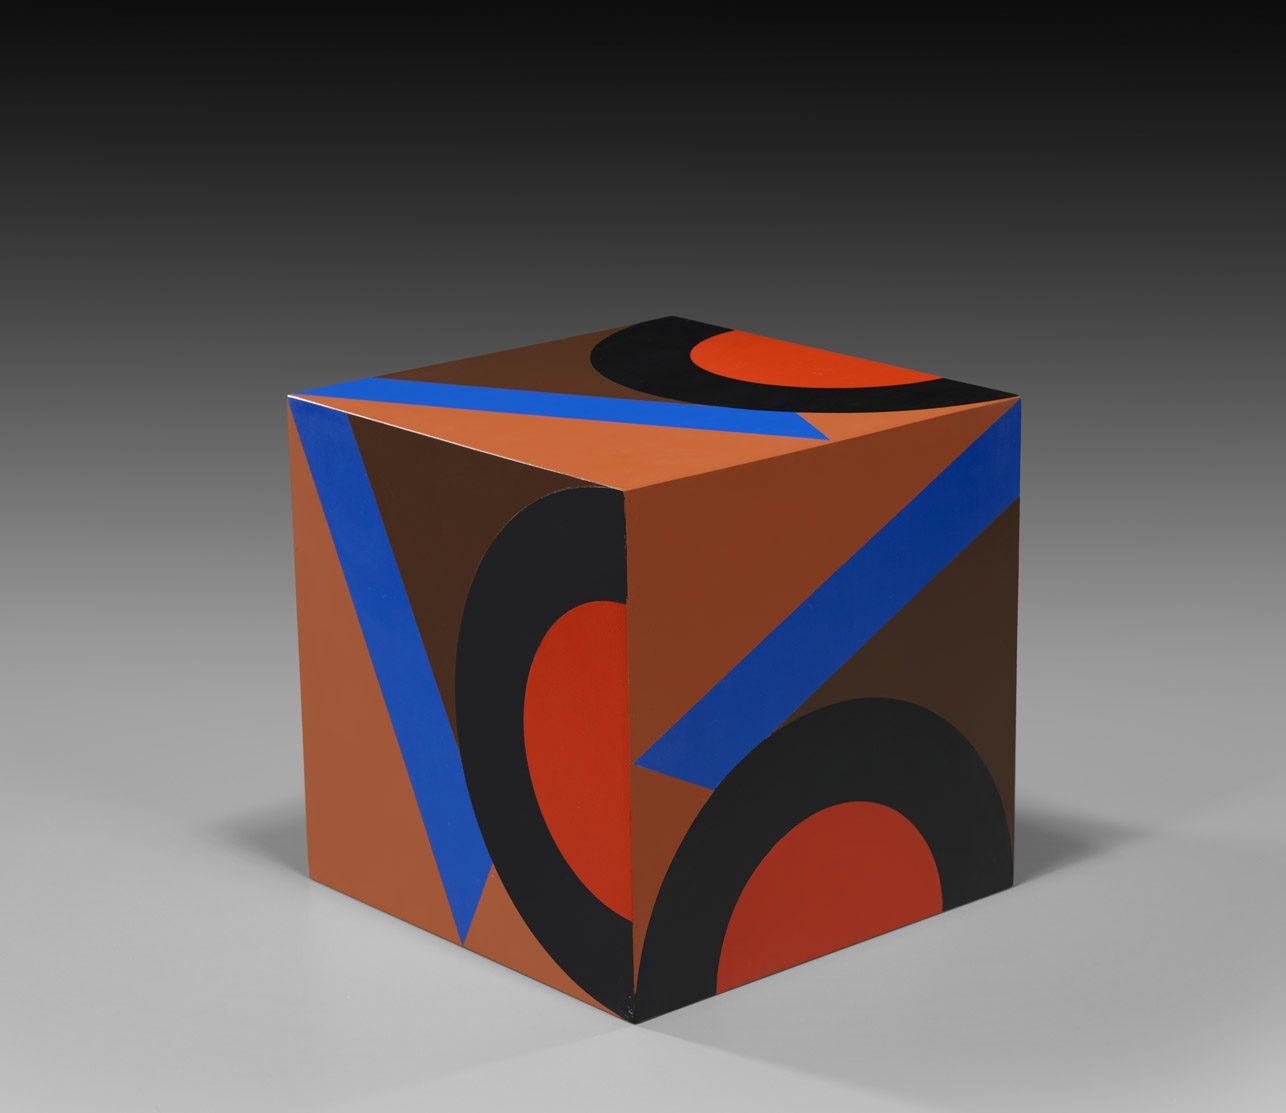 untitled cube (brown background VC) , 1984  oil on wood 10 x 10 x 10 inches; 25.4 x 25.4 x 25.4 centimeters